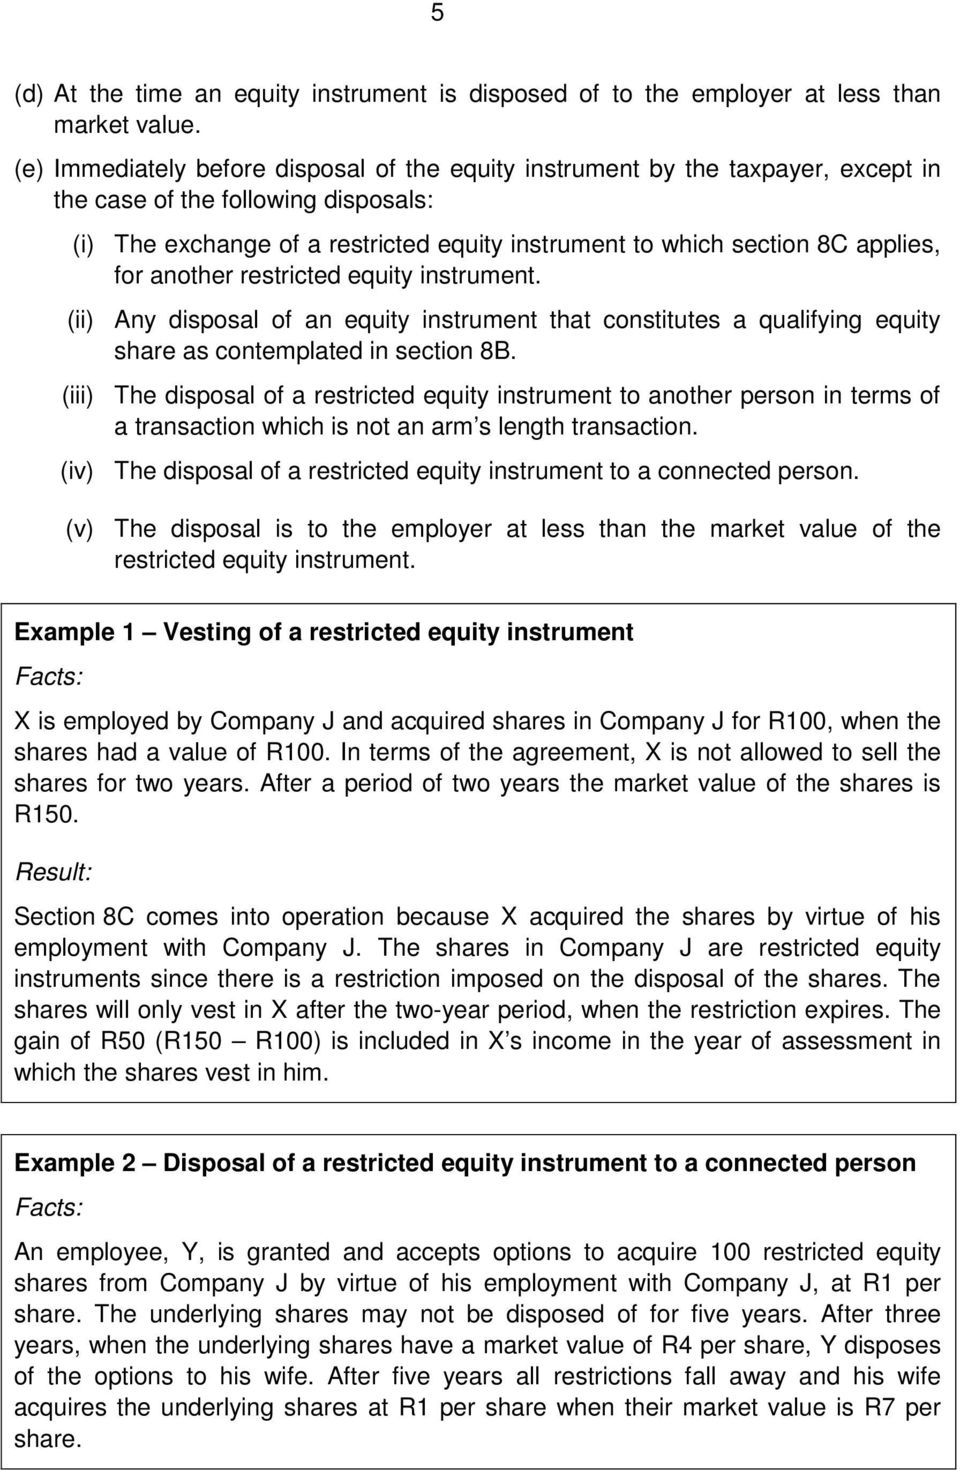 applies, for another restricted equity instrument. (ii) Any disposal of an equity instrument that constitutes a qualifying equity share as contemplated in section 8B.